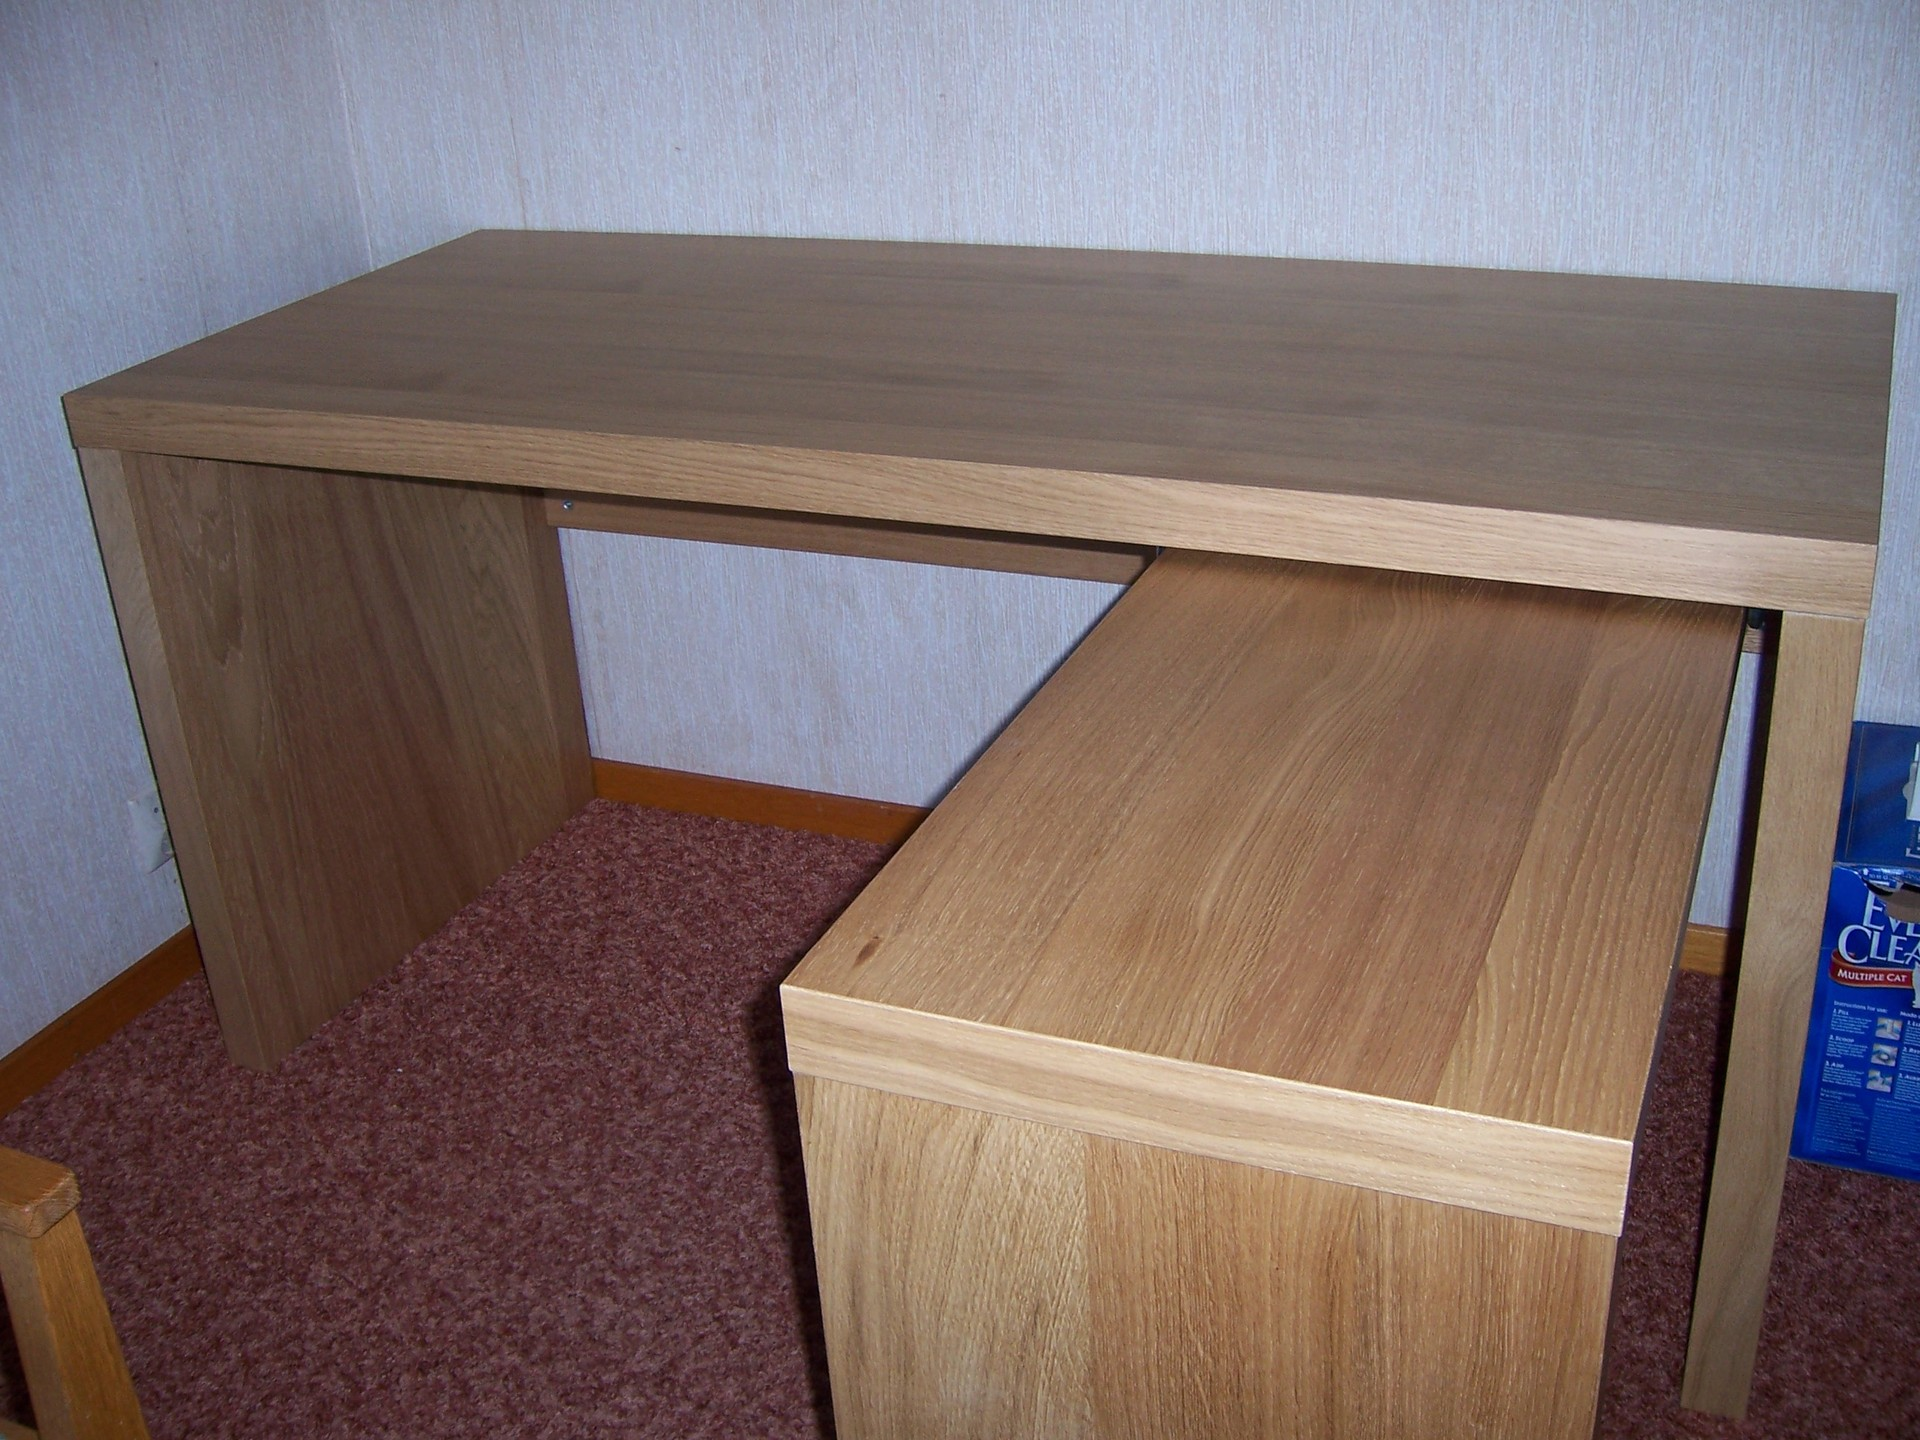 superb-small-desk-for-bedroom-ikea-jonas-desk